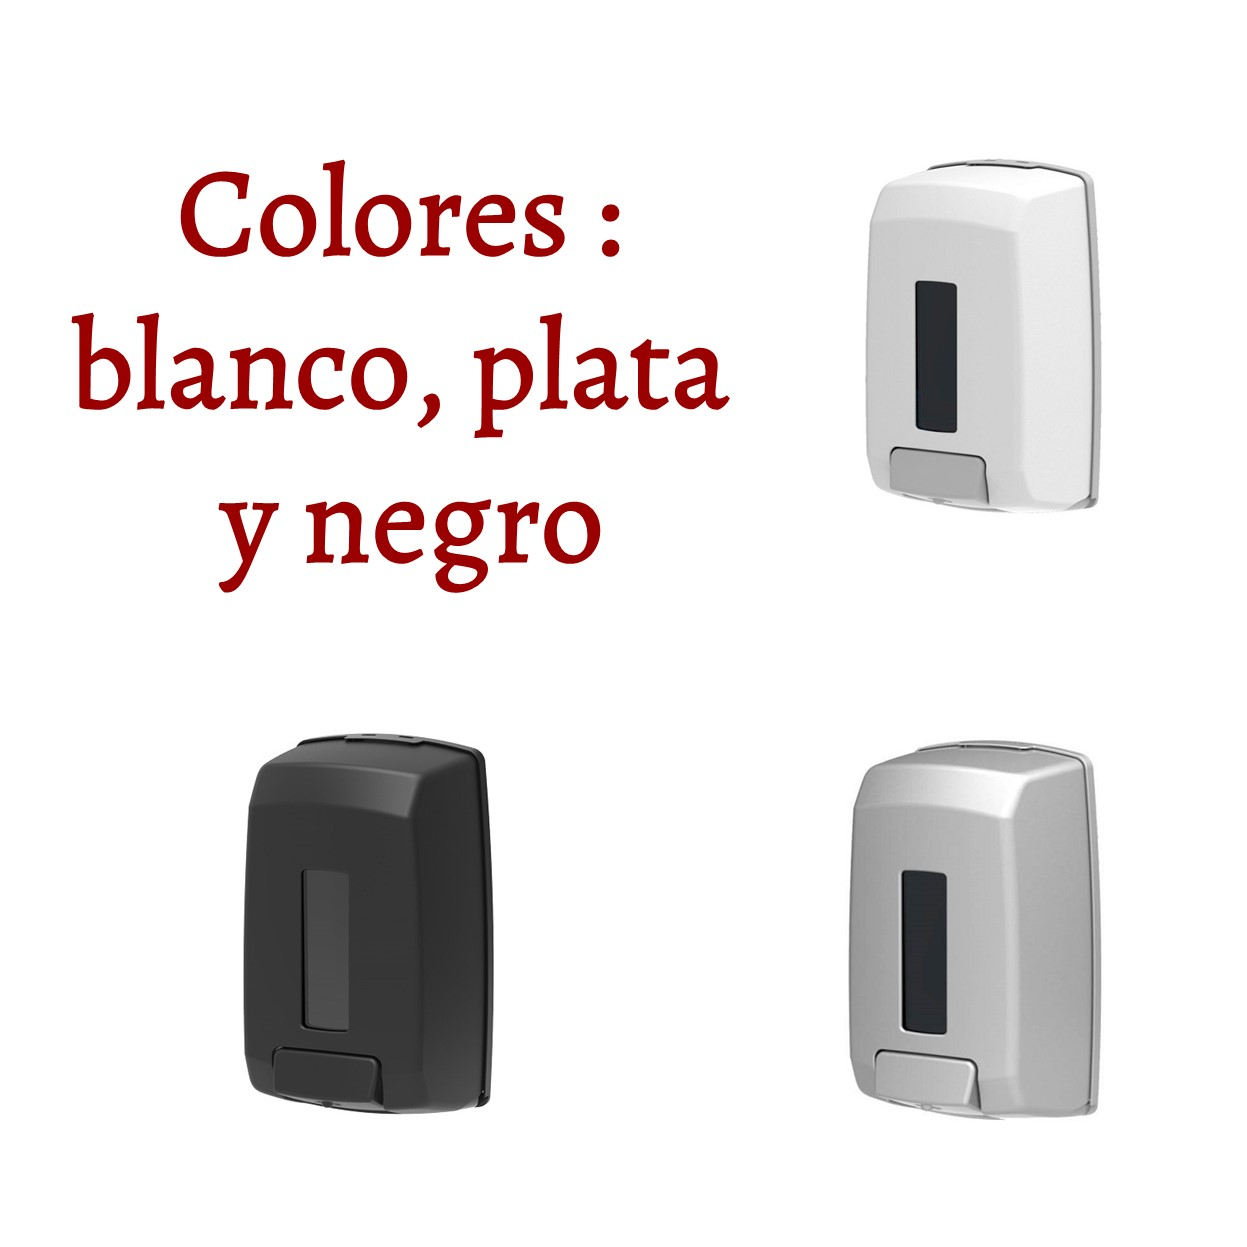 Dispensador de desinfectante para manos y jabón - Style - colores blanco, plata y negro